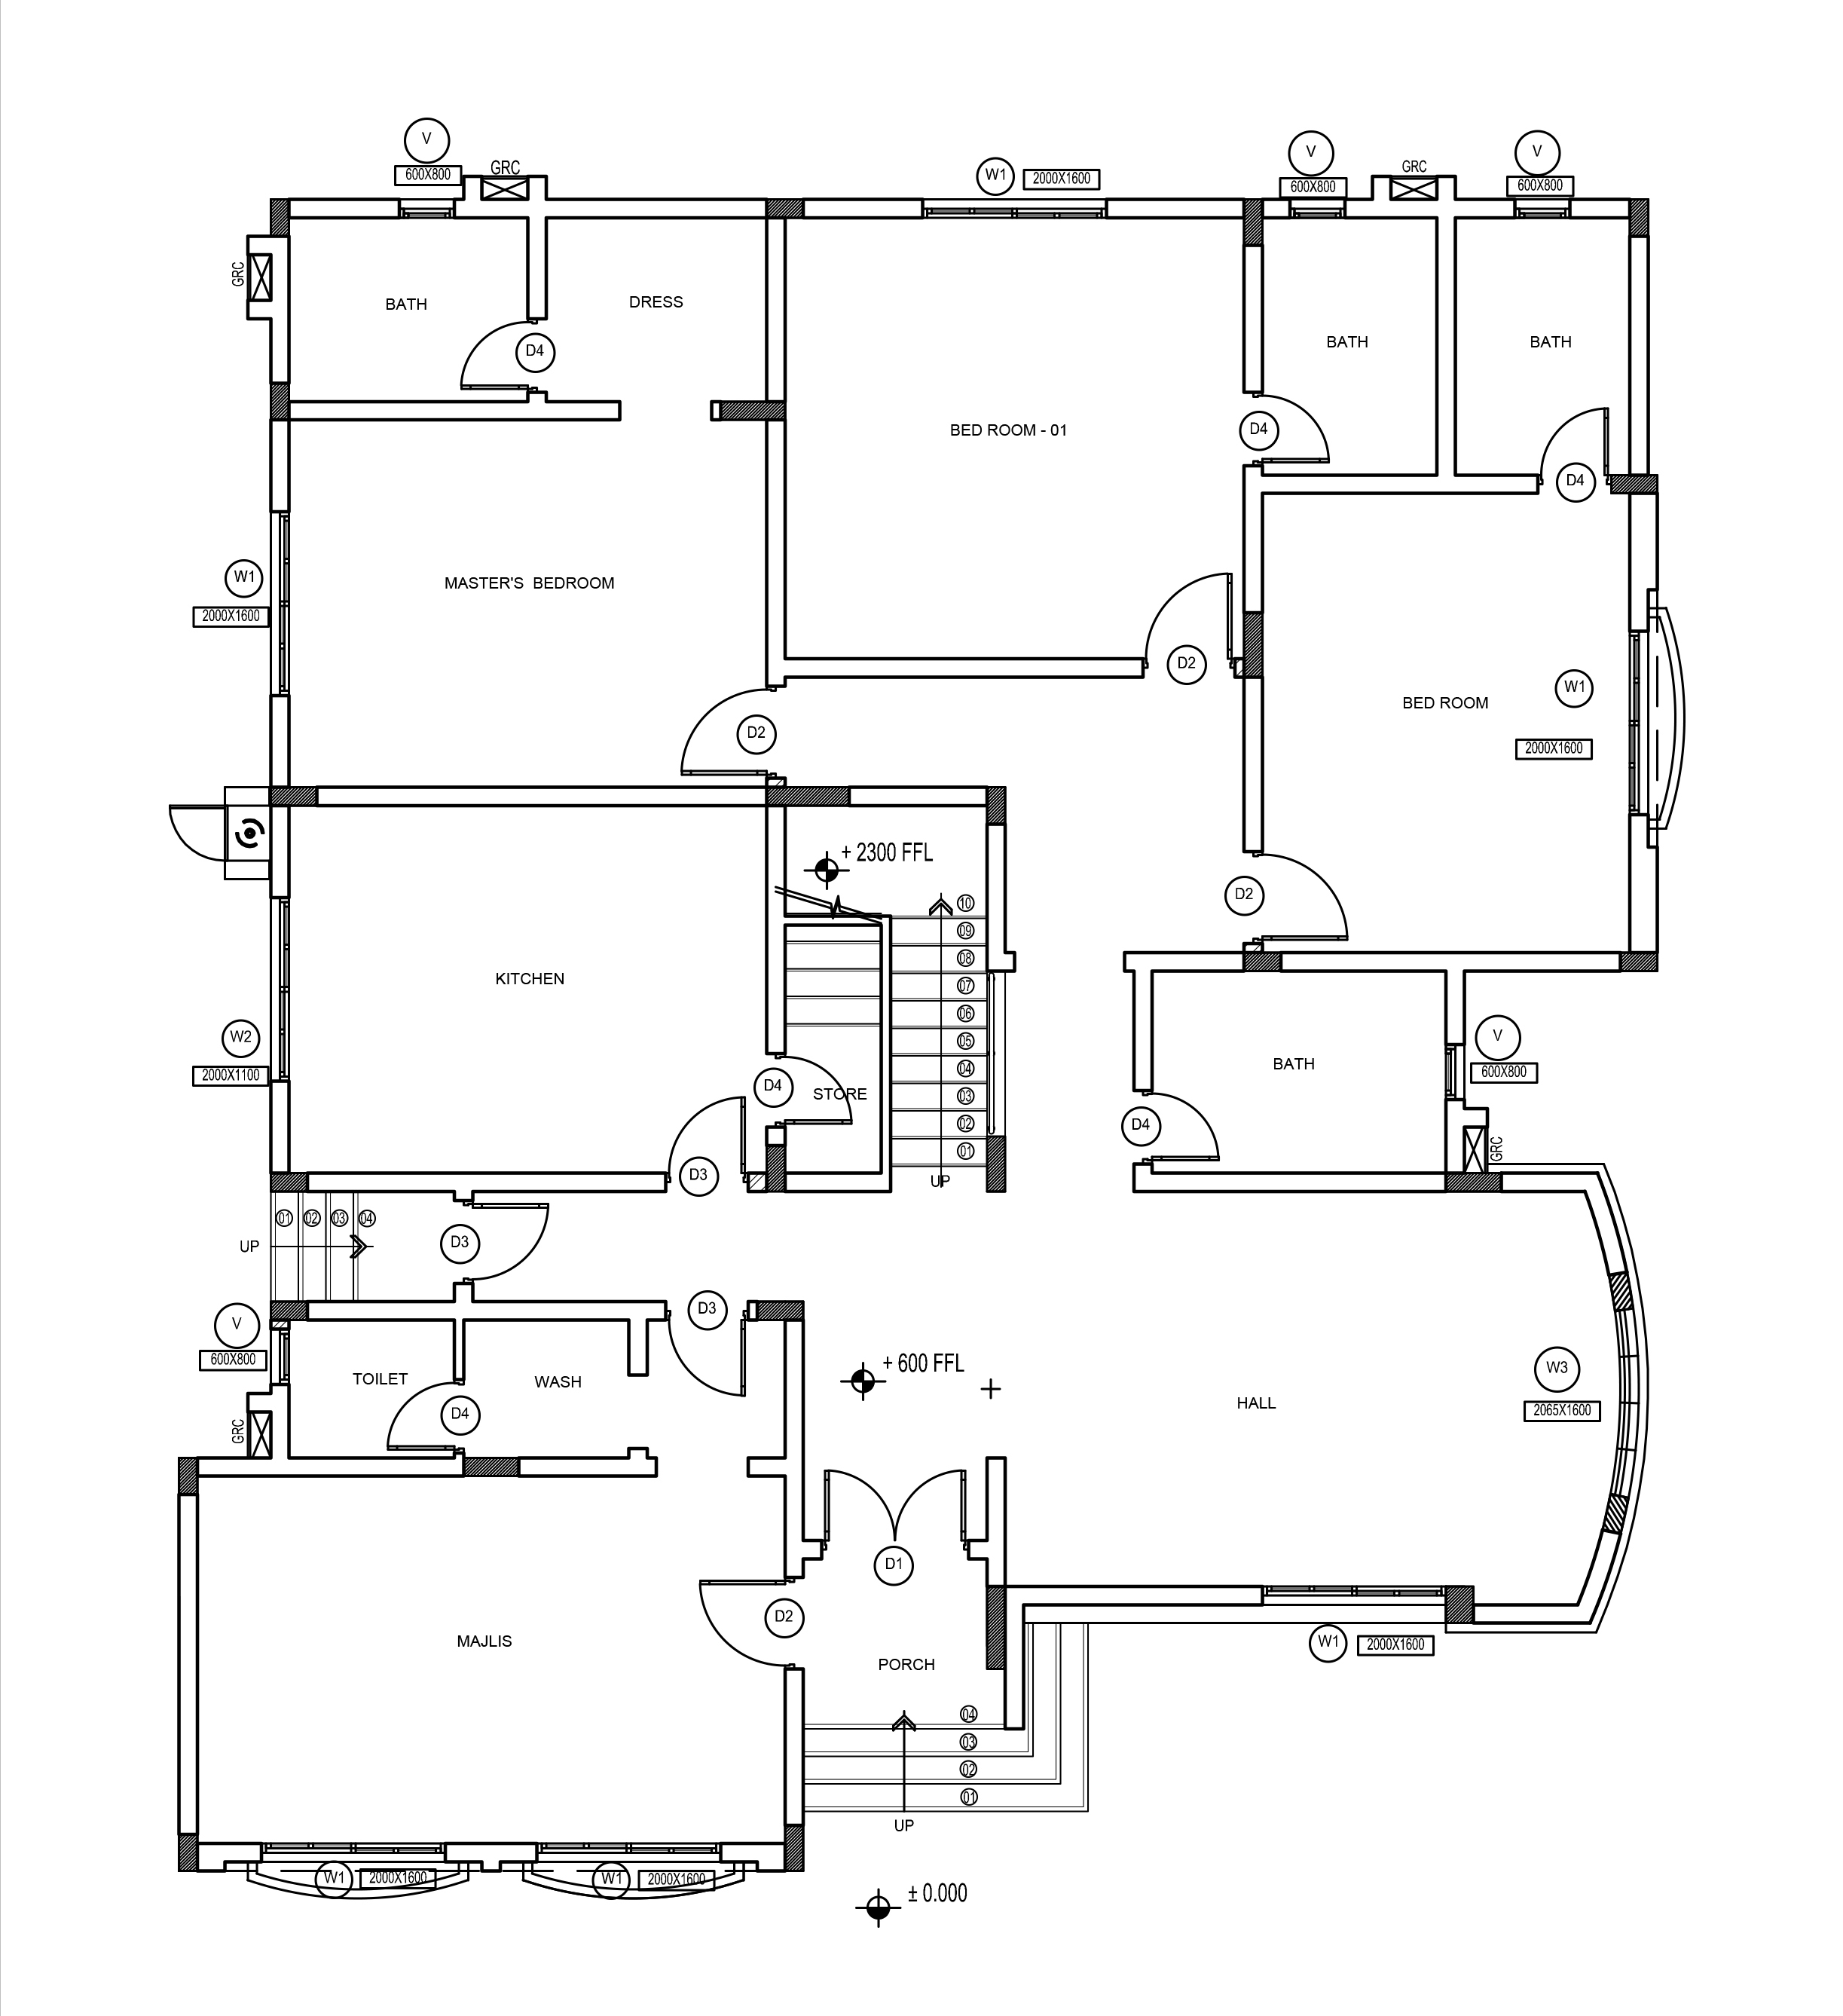 So You Can Free Download Your Selected Cad Block Or House Plan Using This  Below Link.